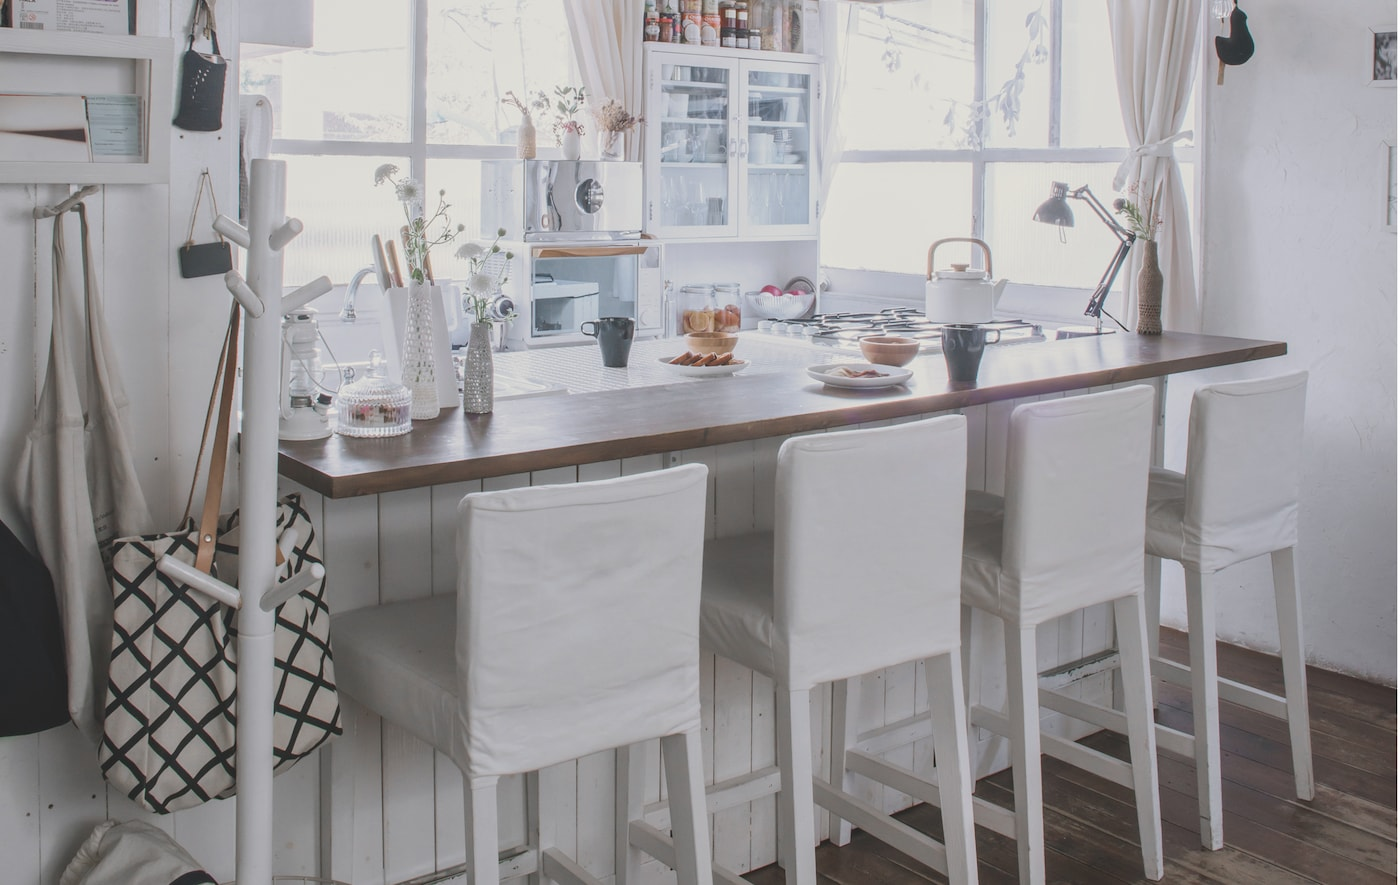 Mealtimes take place at the kitchen counter in Kaoli's tiny Tokyo home.